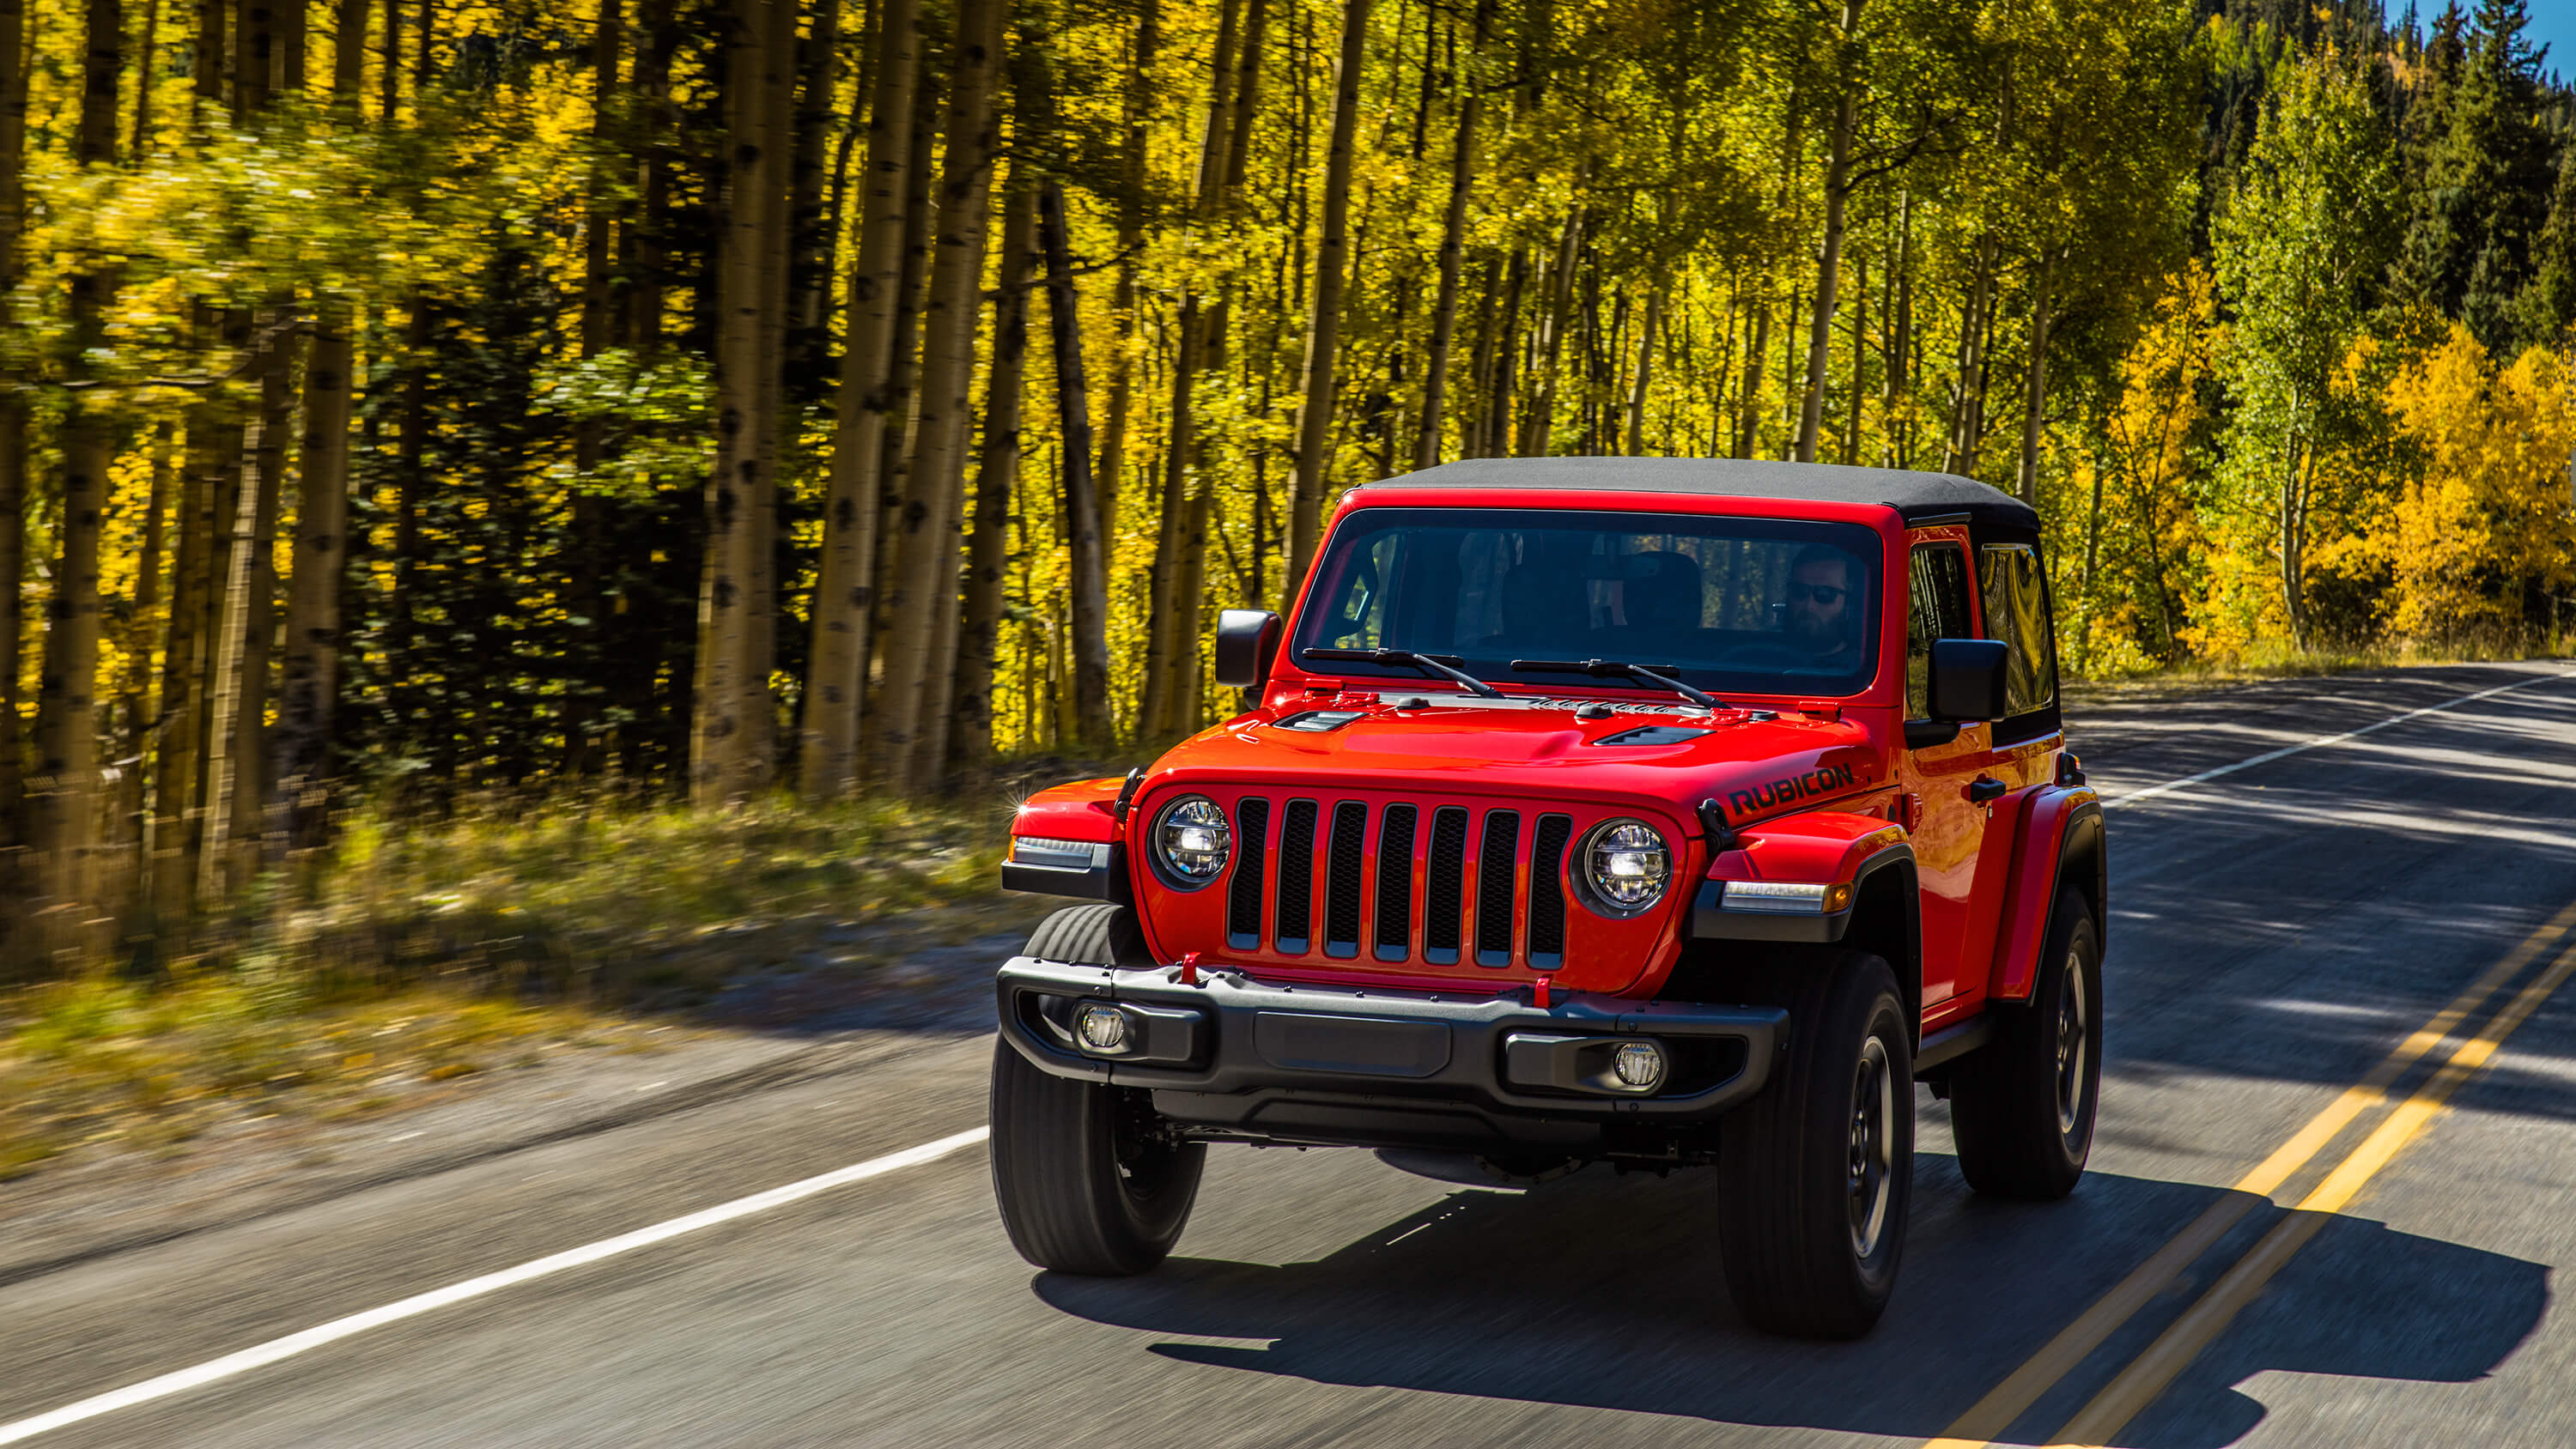 Jeep Wrangler Rubicon HD Wallpaper